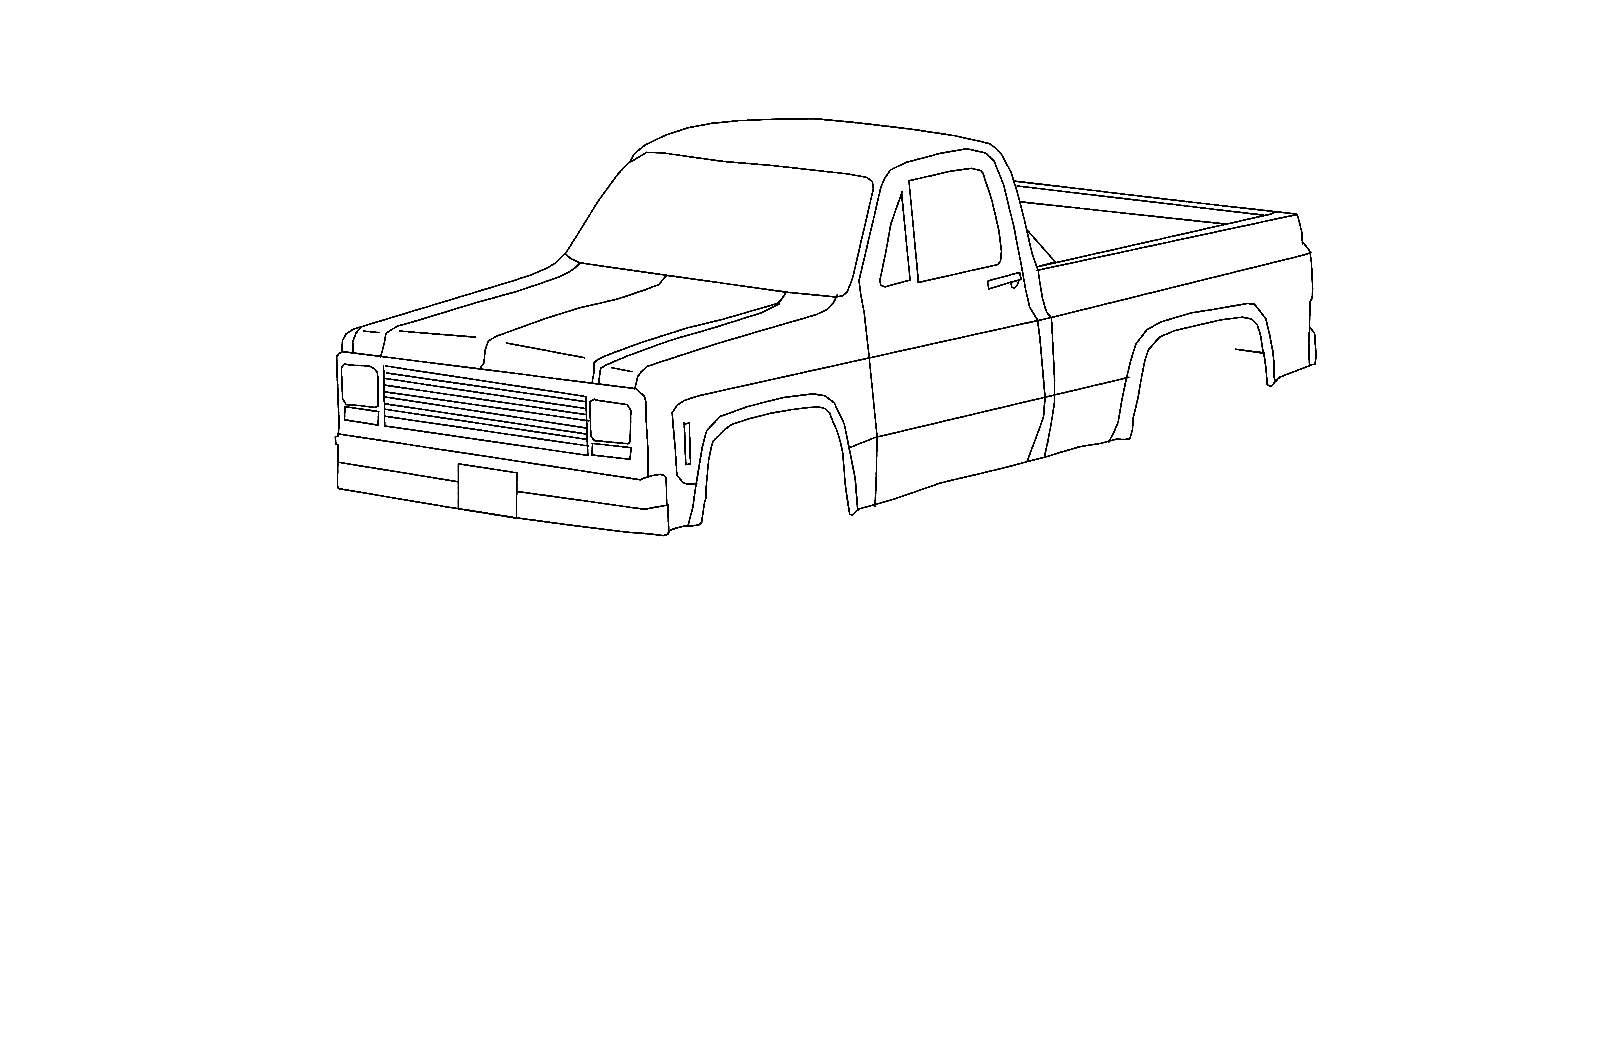 1999 K3500 Wiring Diagram moreover RepairGuideContent as well West Coast Figurative Sculpture Artists moreover 1996 Chevy Silverado likewise Chevy Coloring Pages 2011 10 01. on chevrolet z71 4x4 lifted